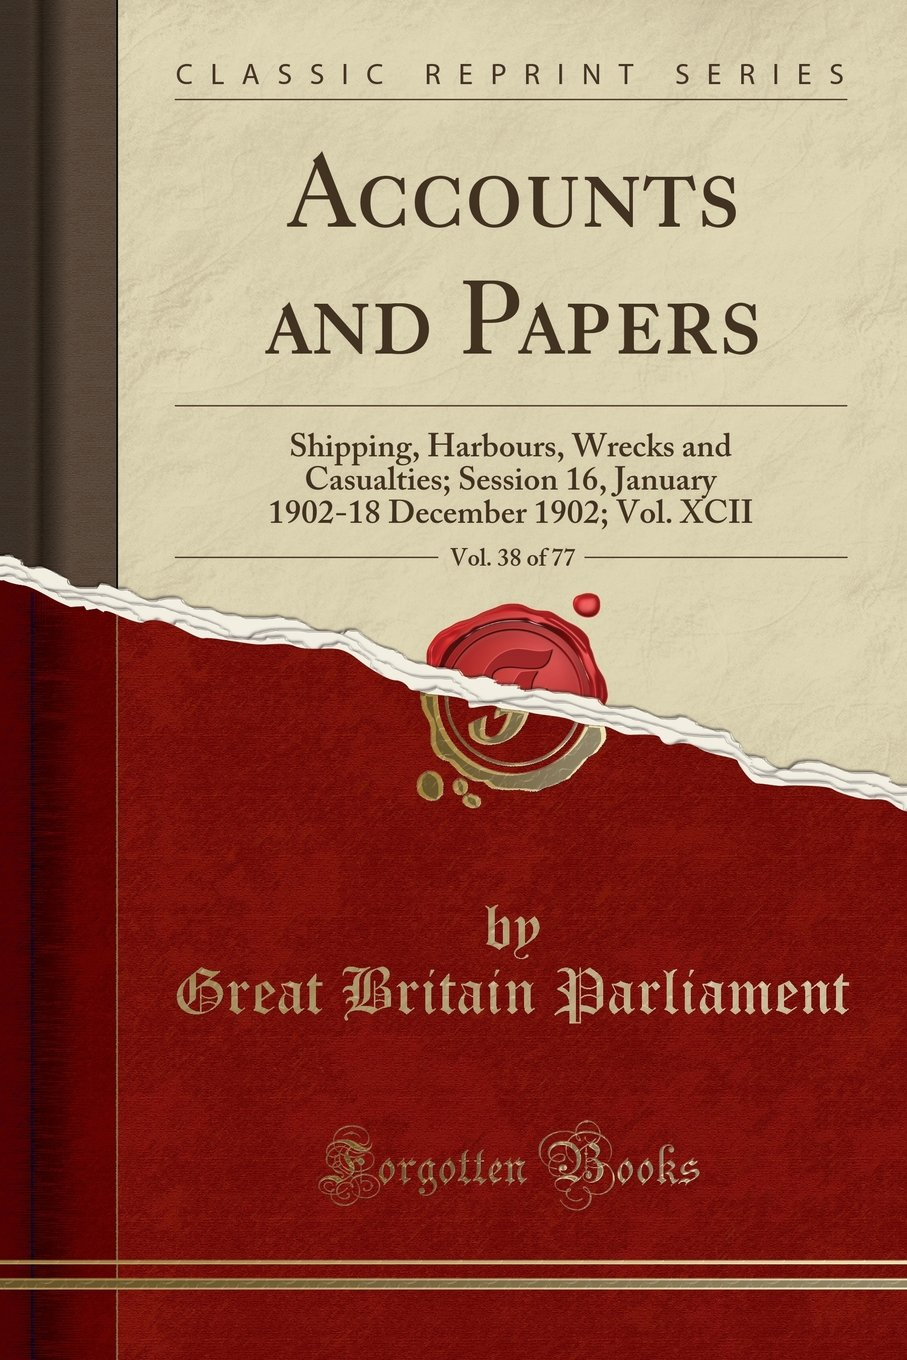 Download Accounts and Papers, Vol. 38 of 77: Shipping, Harbours, Wrecks and Casualties; Session 16, January 1902-18 December 1902; Vol. XCII (Classic Reprint) pdf